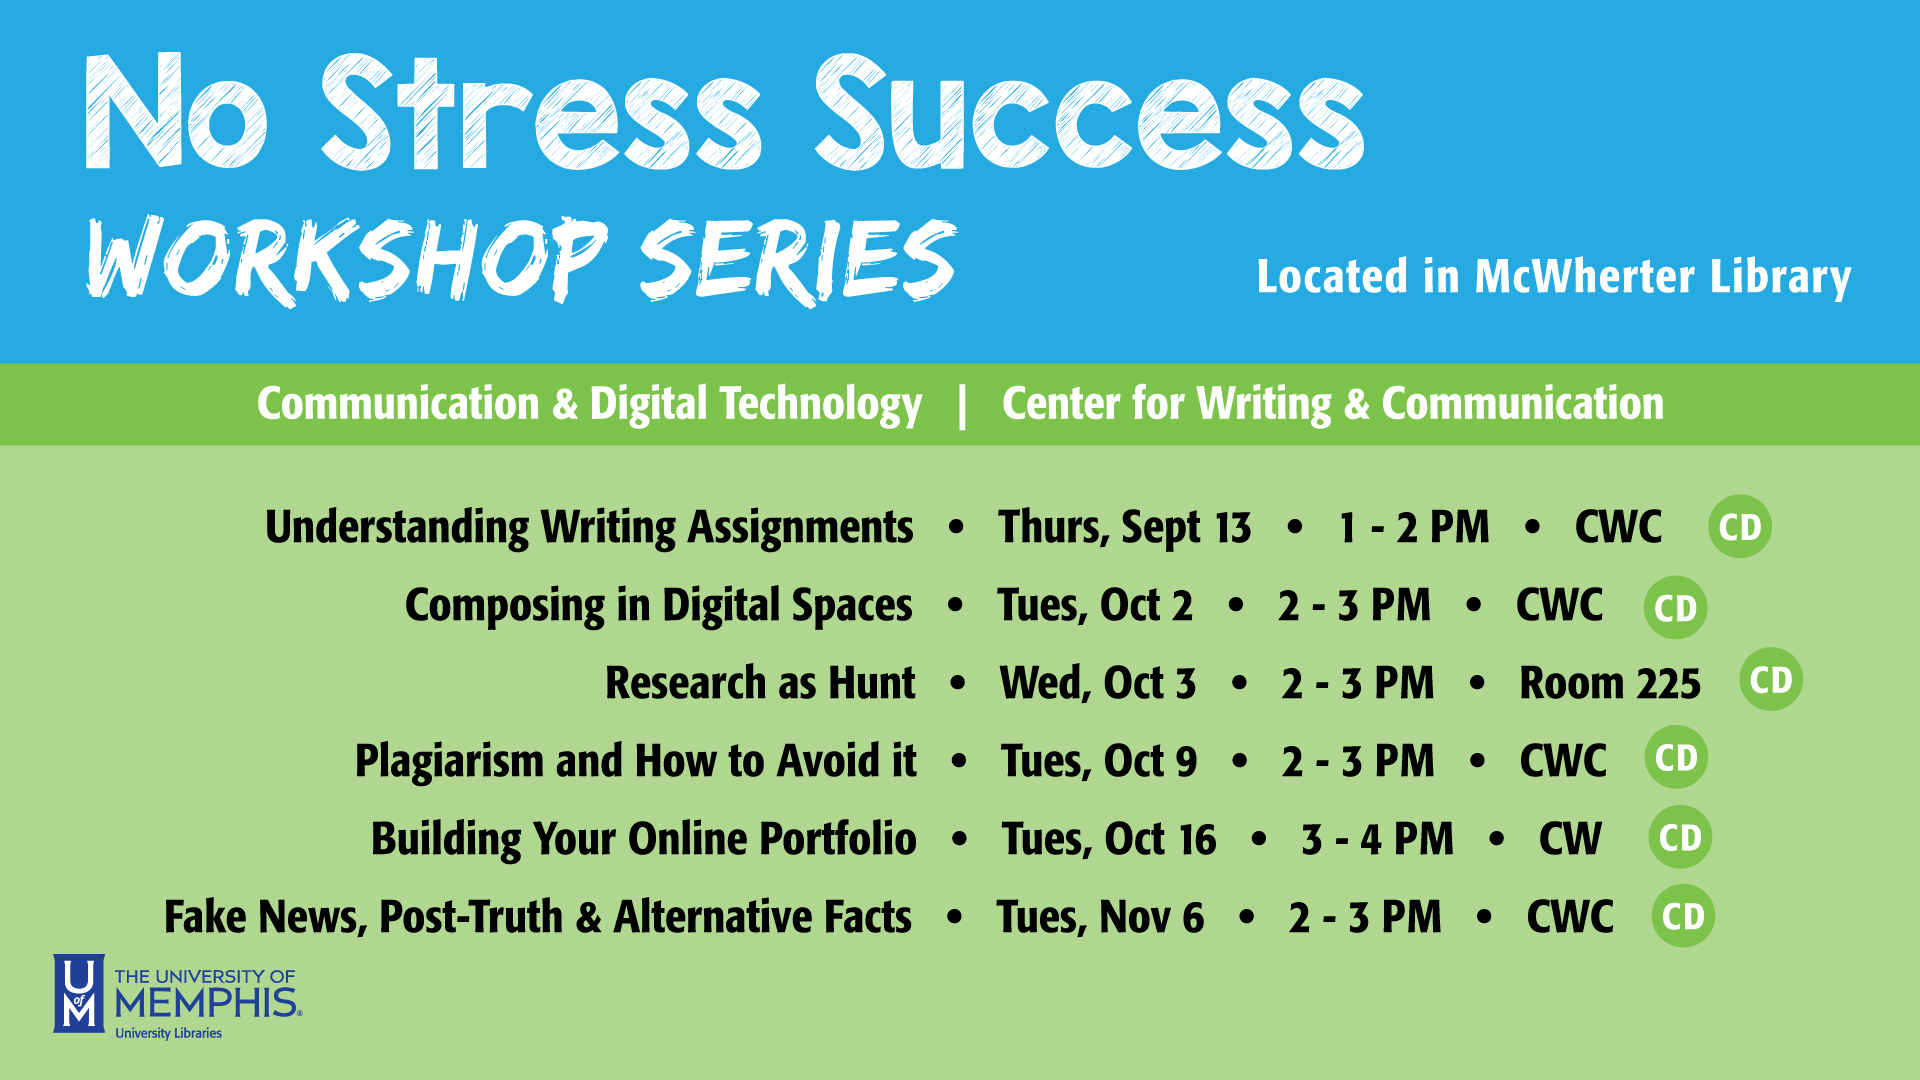 No Stress Success Workshop: Plagiarism and How to Avoid It